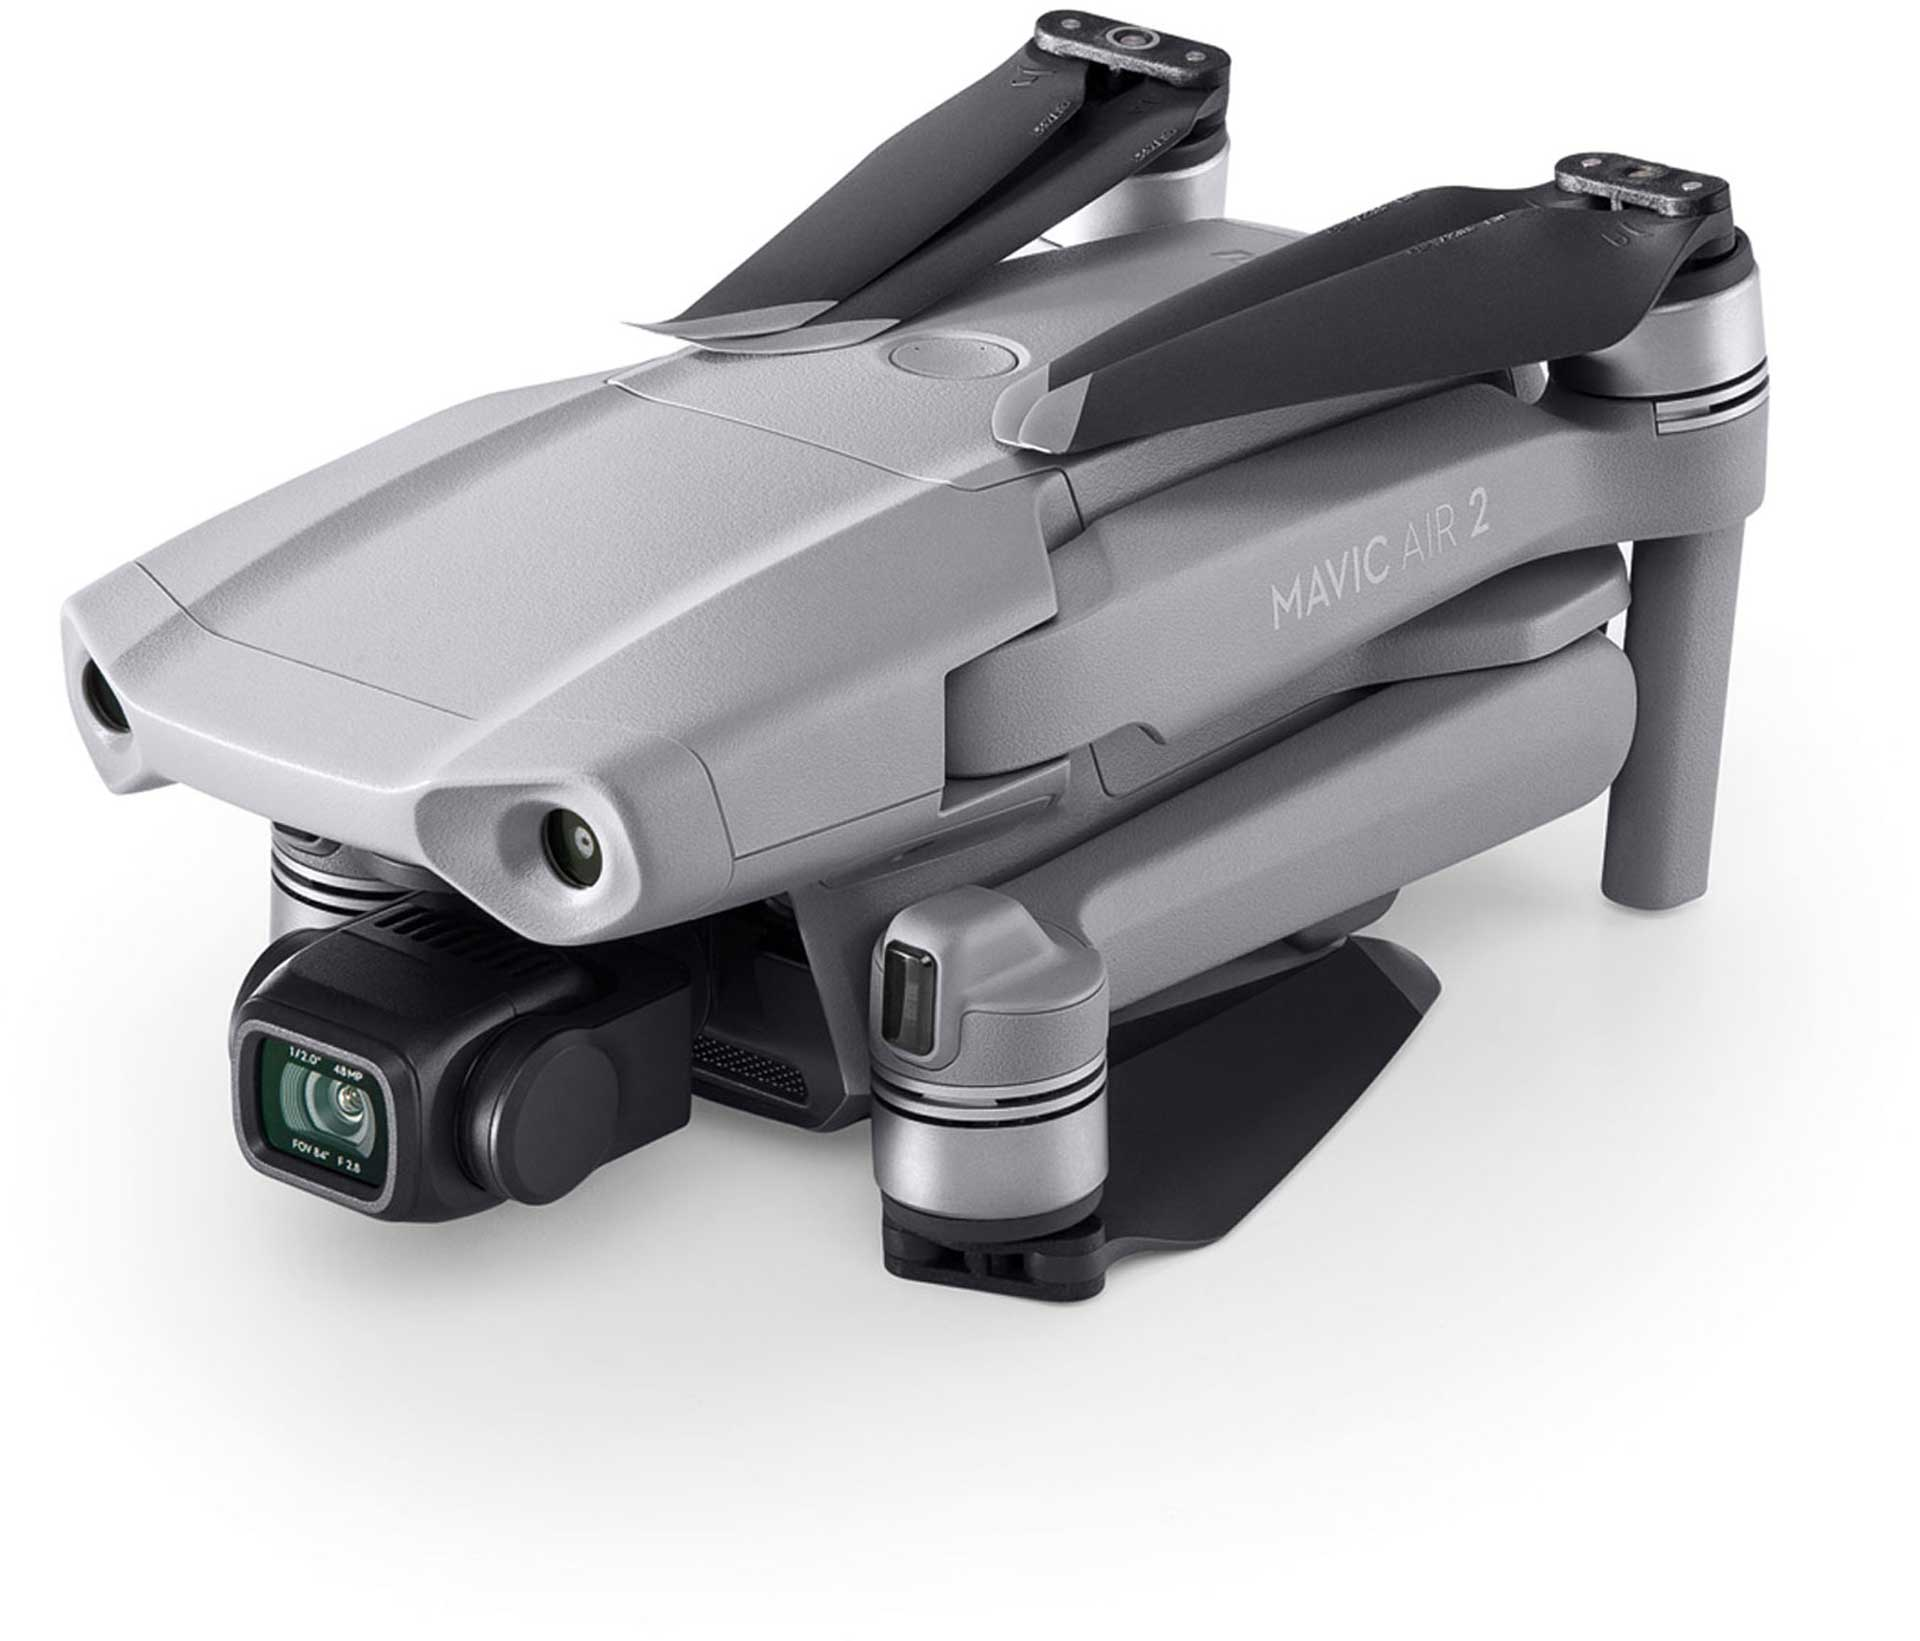 DJI MAVIC AIR 2 (EU)